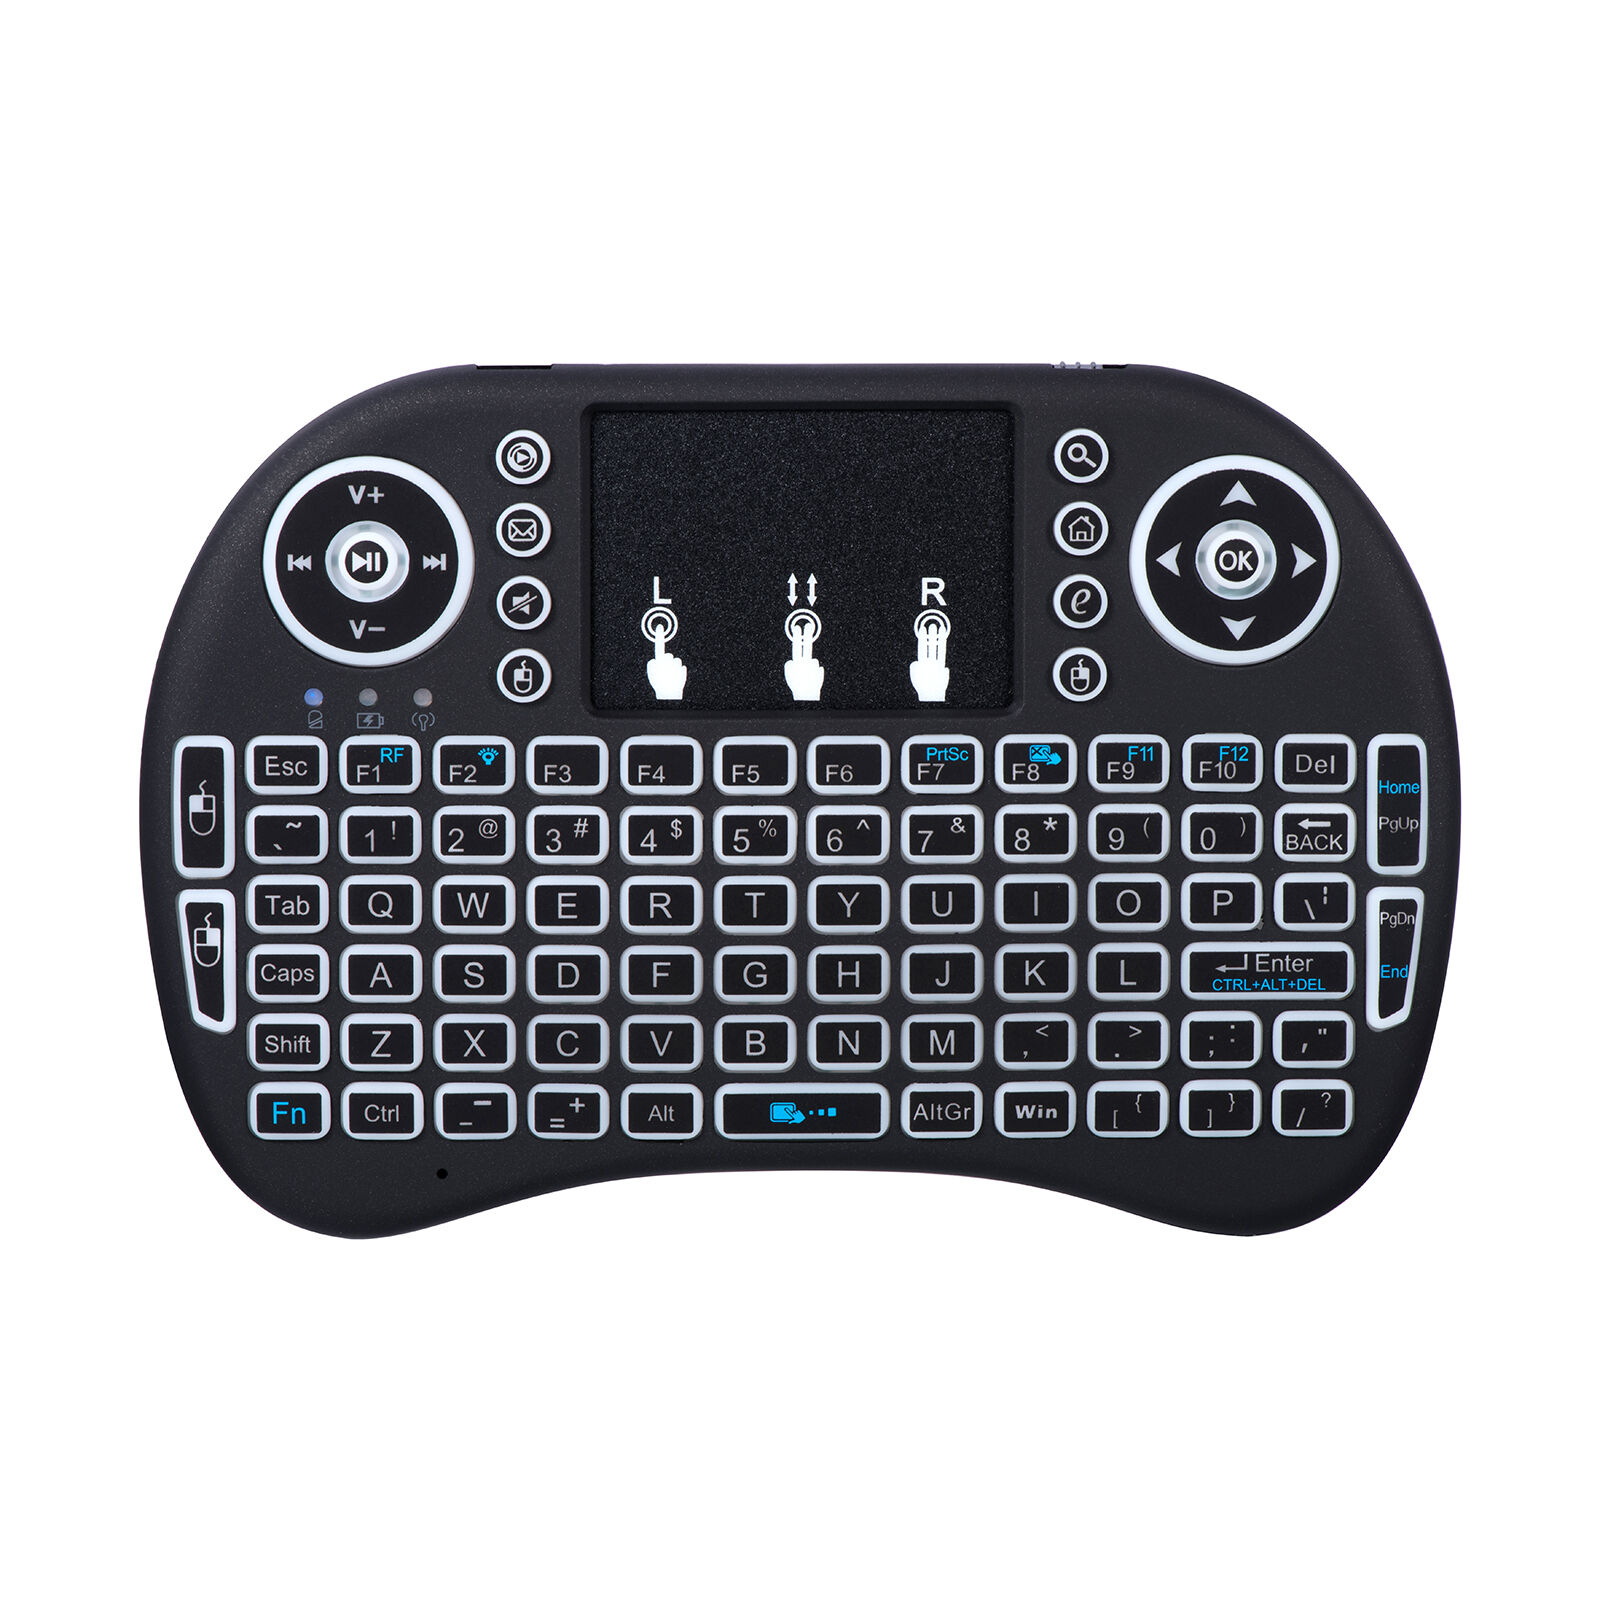 2.4Ghz Bluetooth Wireless Keyboard Remote for Raspberry Smart TV Kodi Android Computers/Tablets & Networking